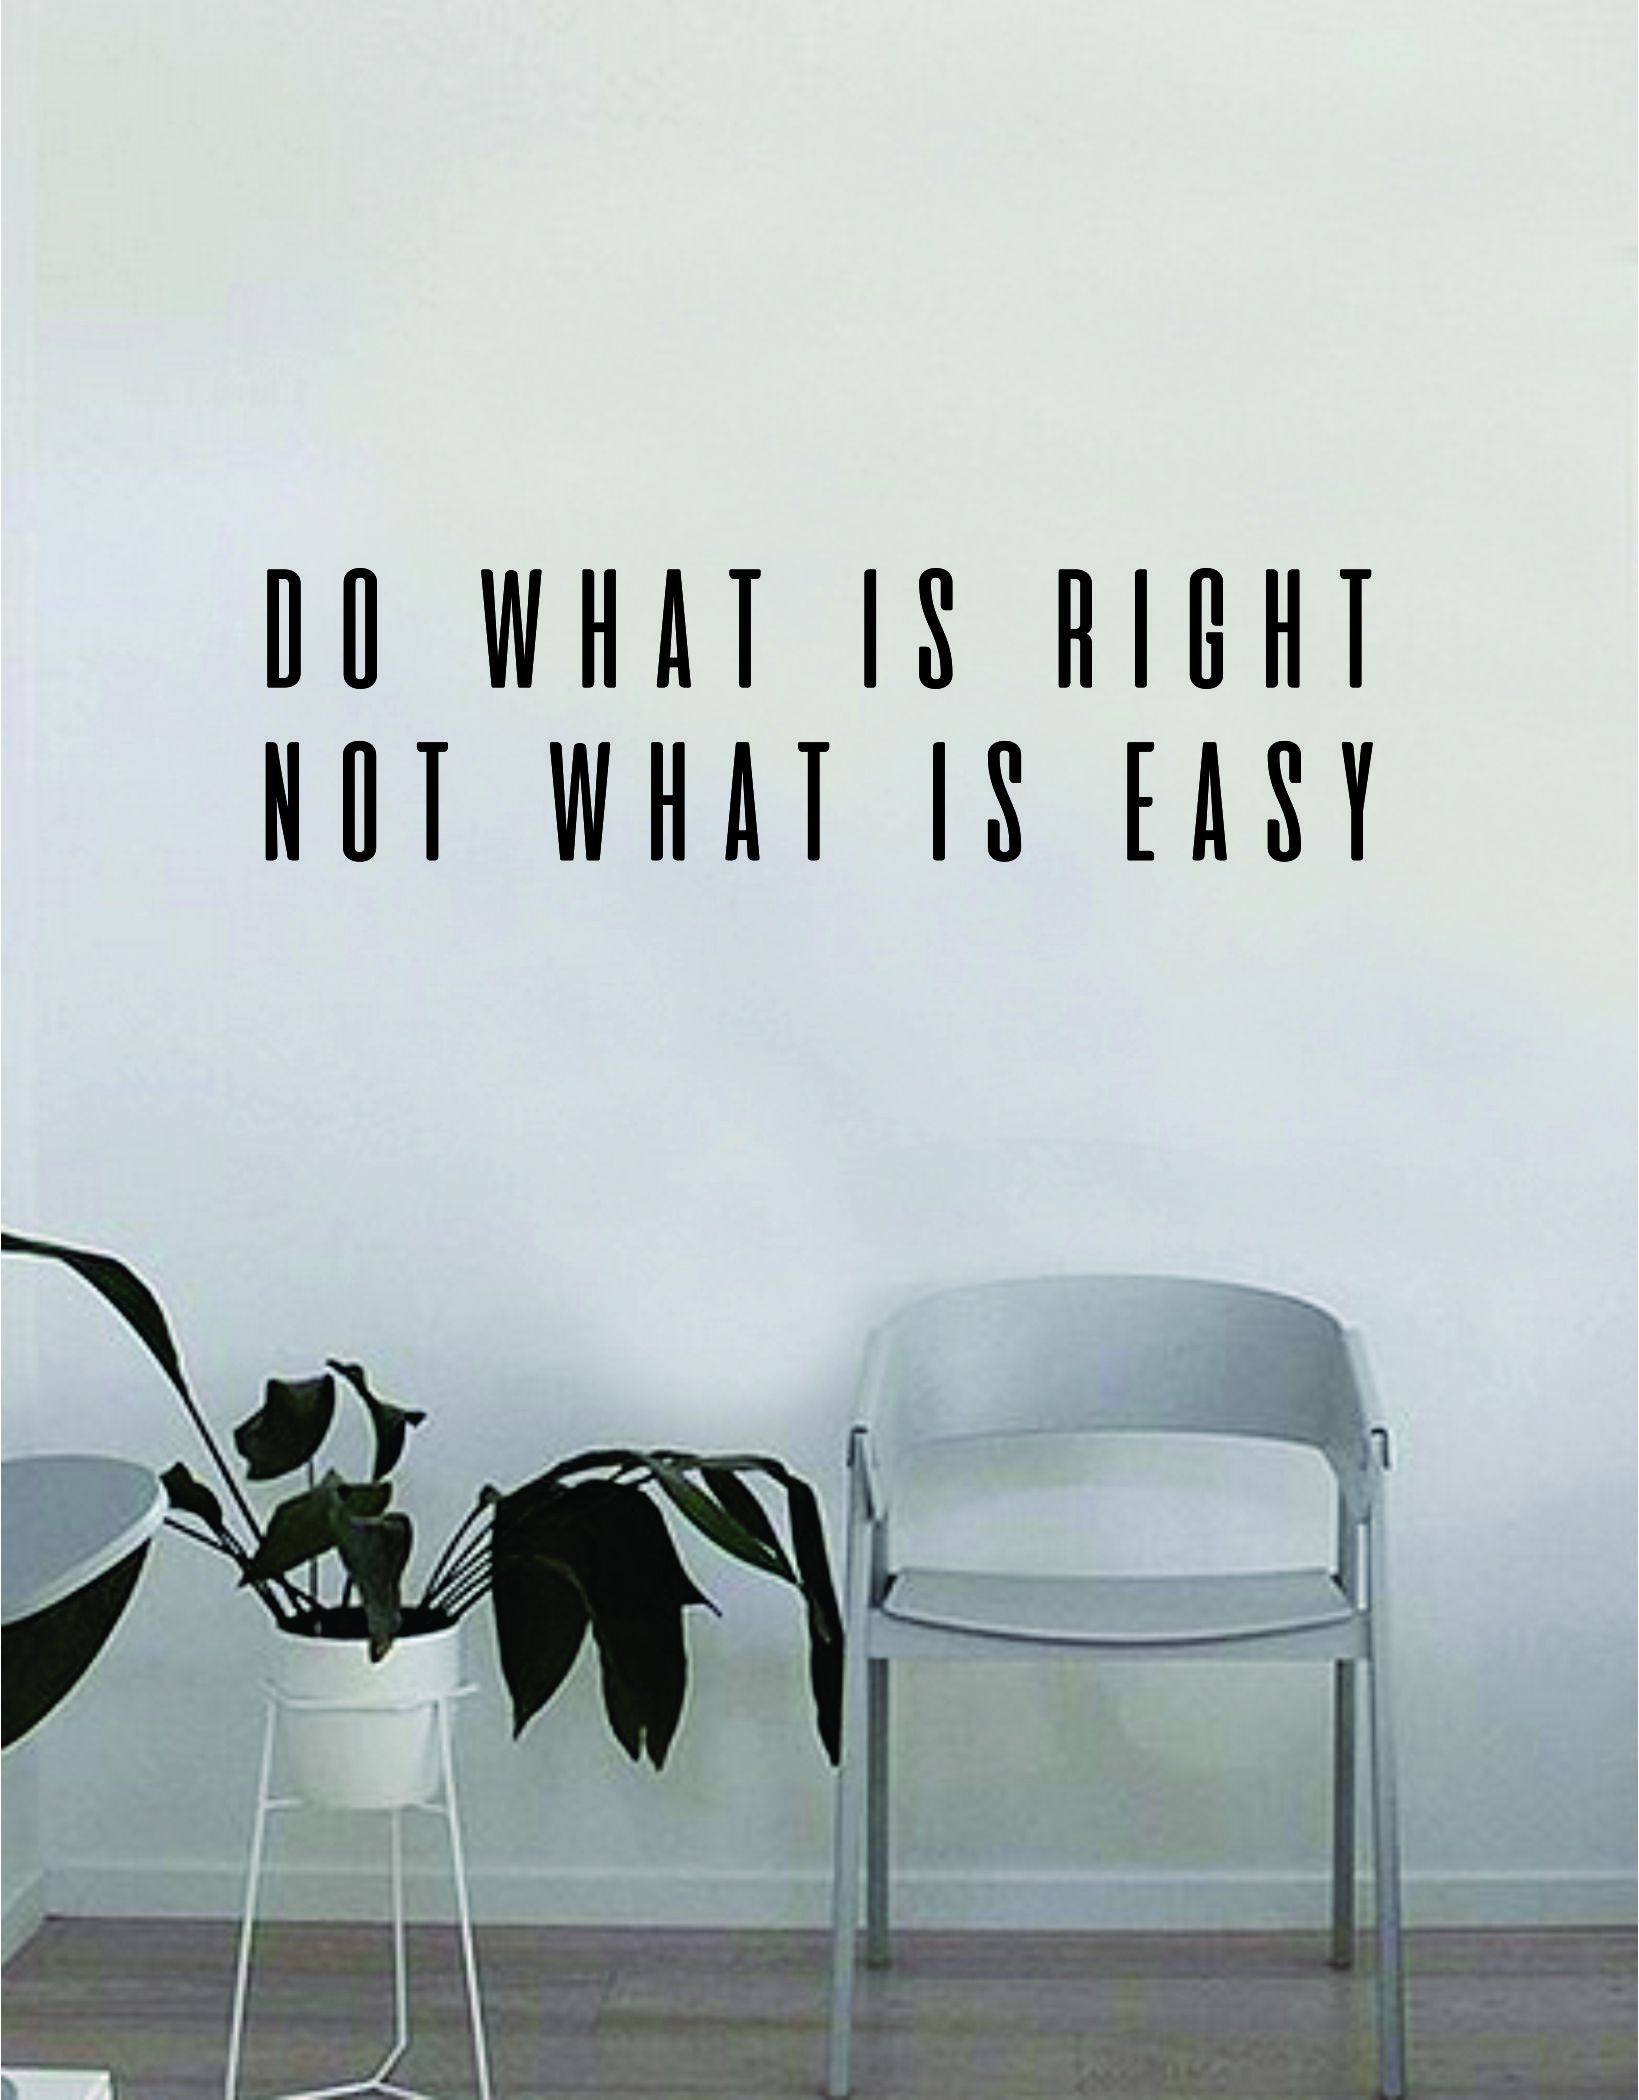 Do What is Right Not What is Easy Quote Wall Decal Art Vinyl Sticker Home Decor Decoration Living Room Bedroom Inspirational Motivational Teen - green